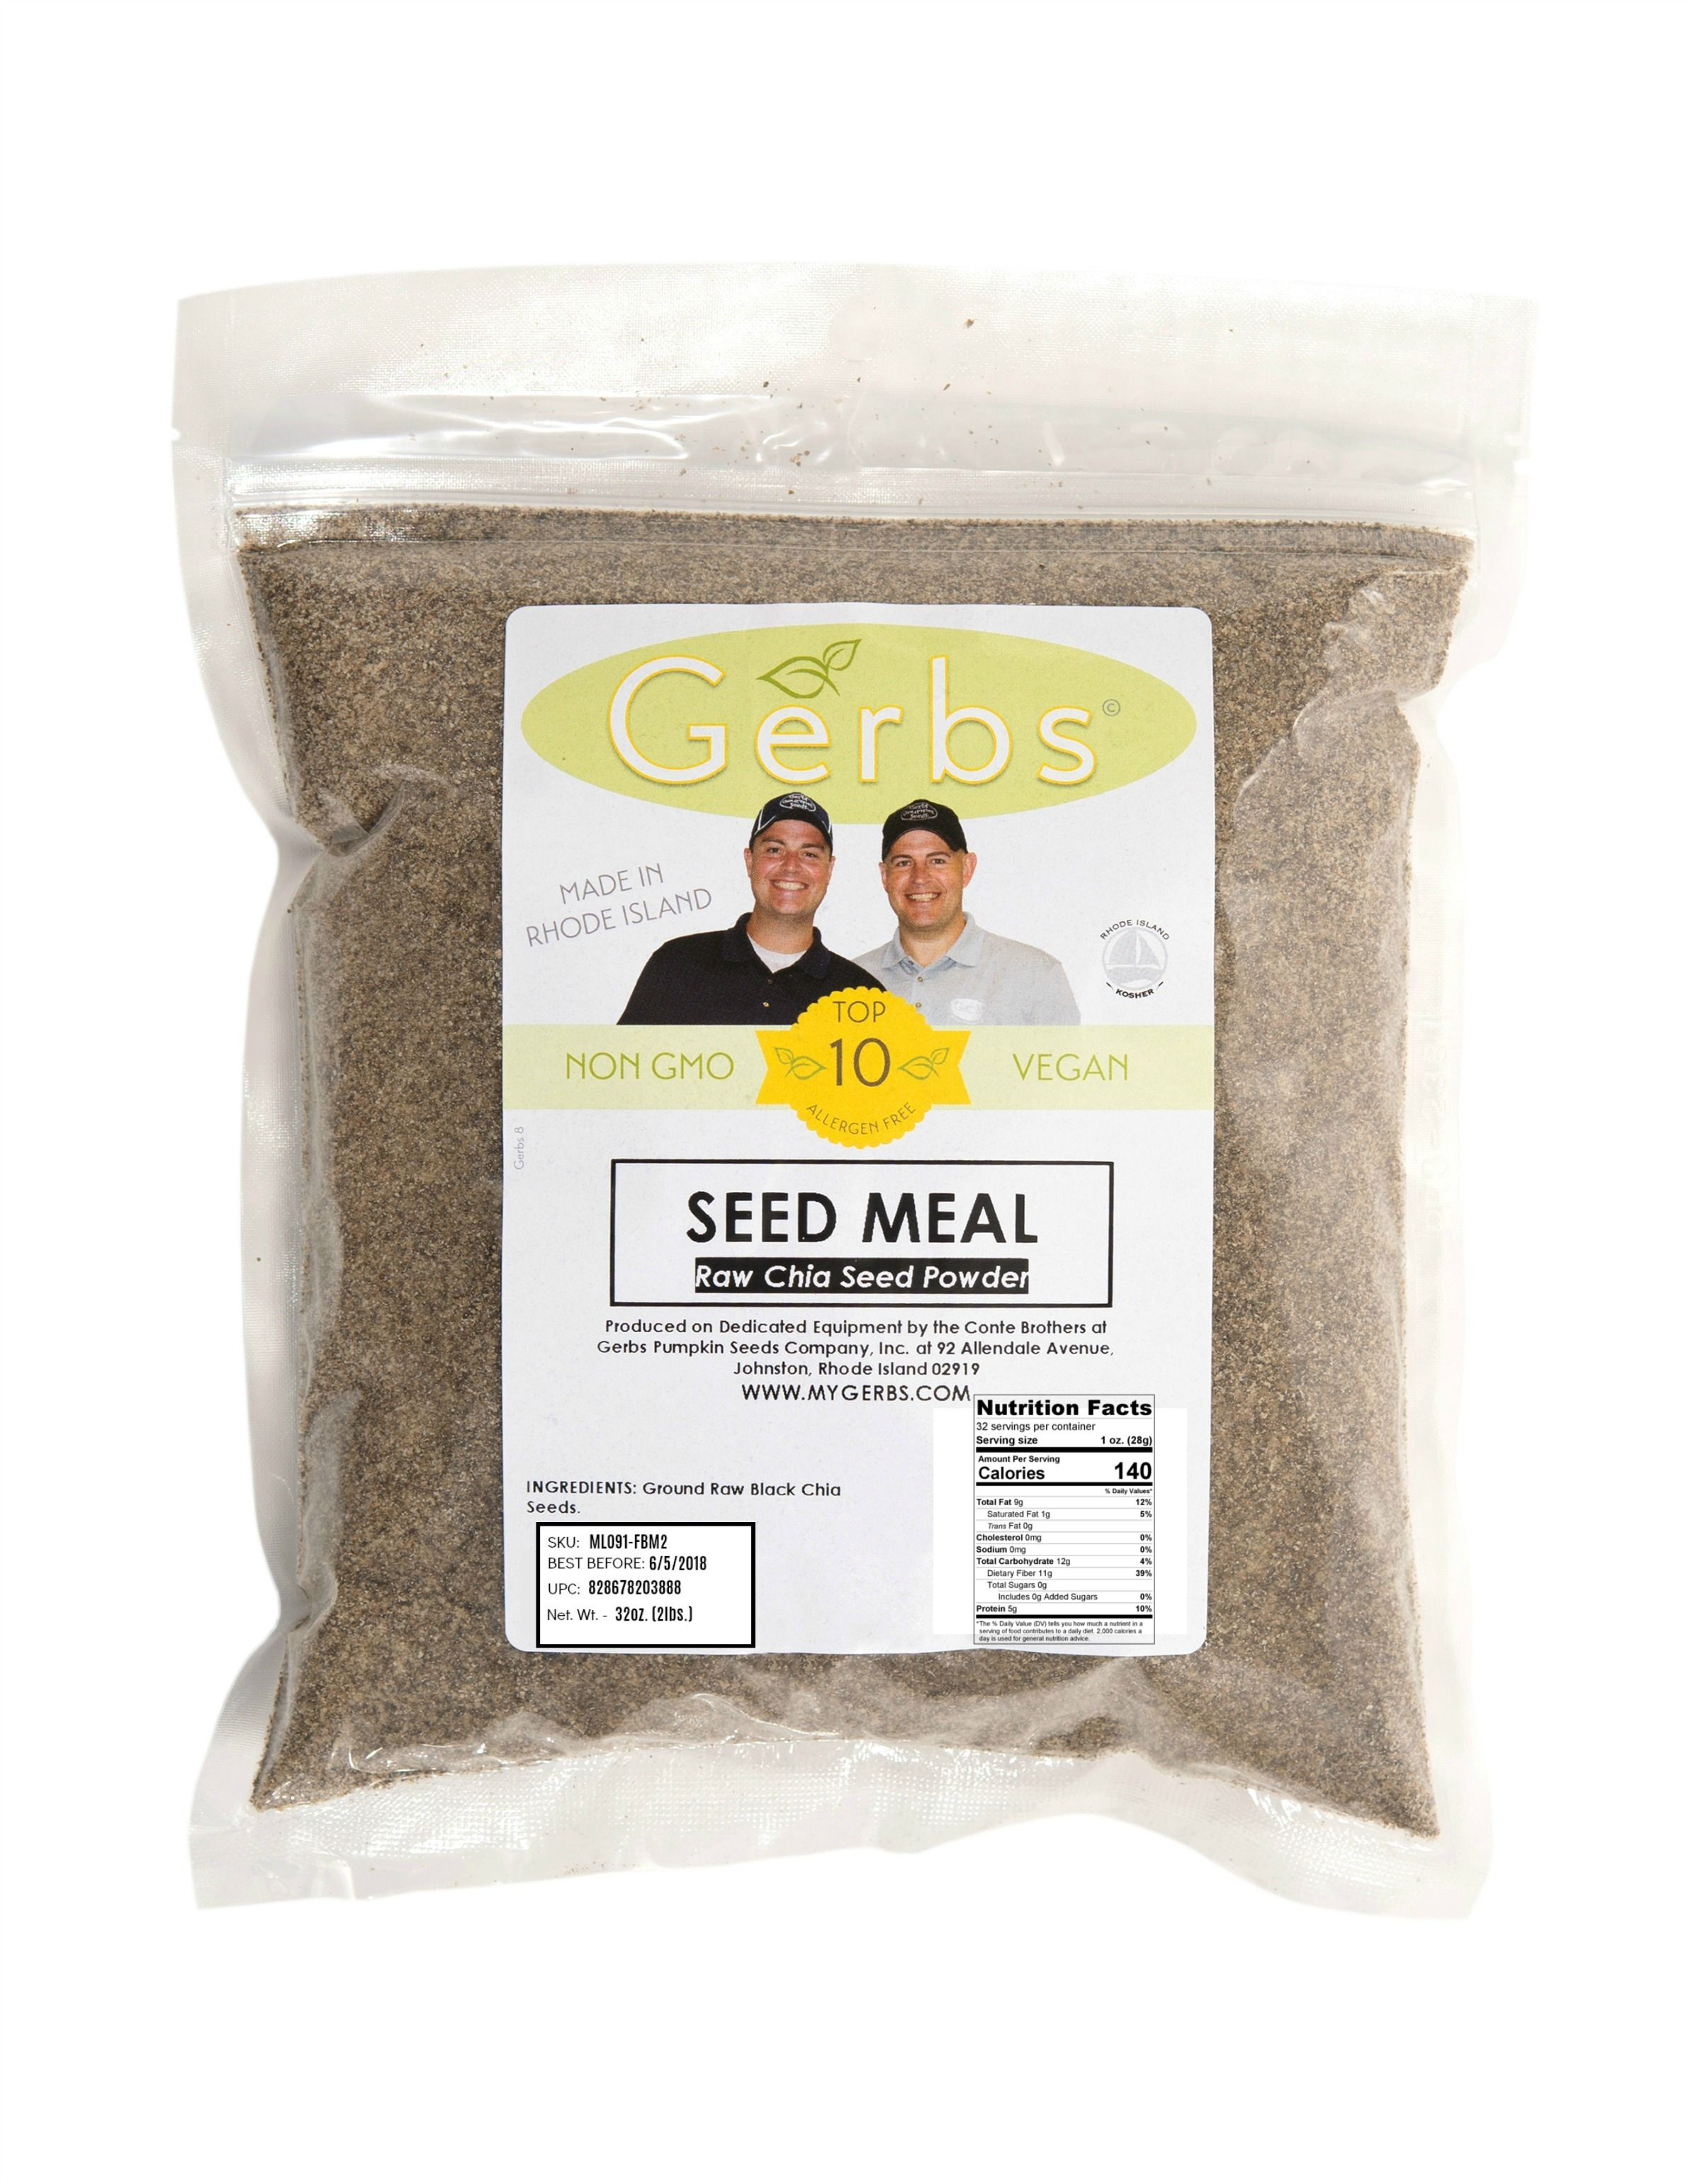 Ground Raw Chia Seed Meal By Gerbs - 2 LBS - Top 14 Food